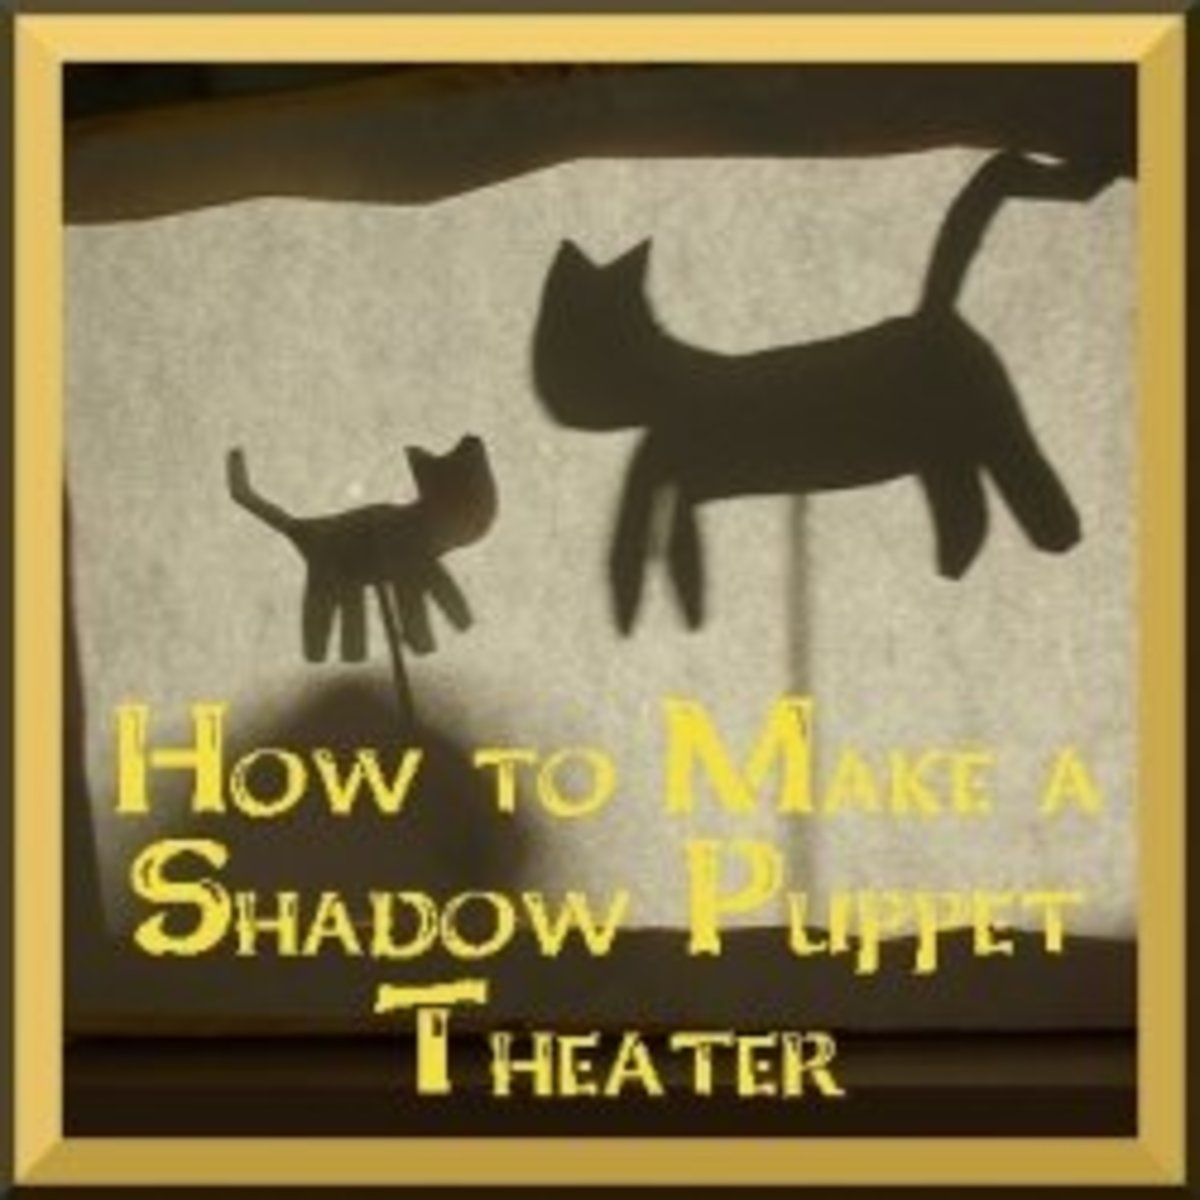 How to Make a Shadow Puppet Theater